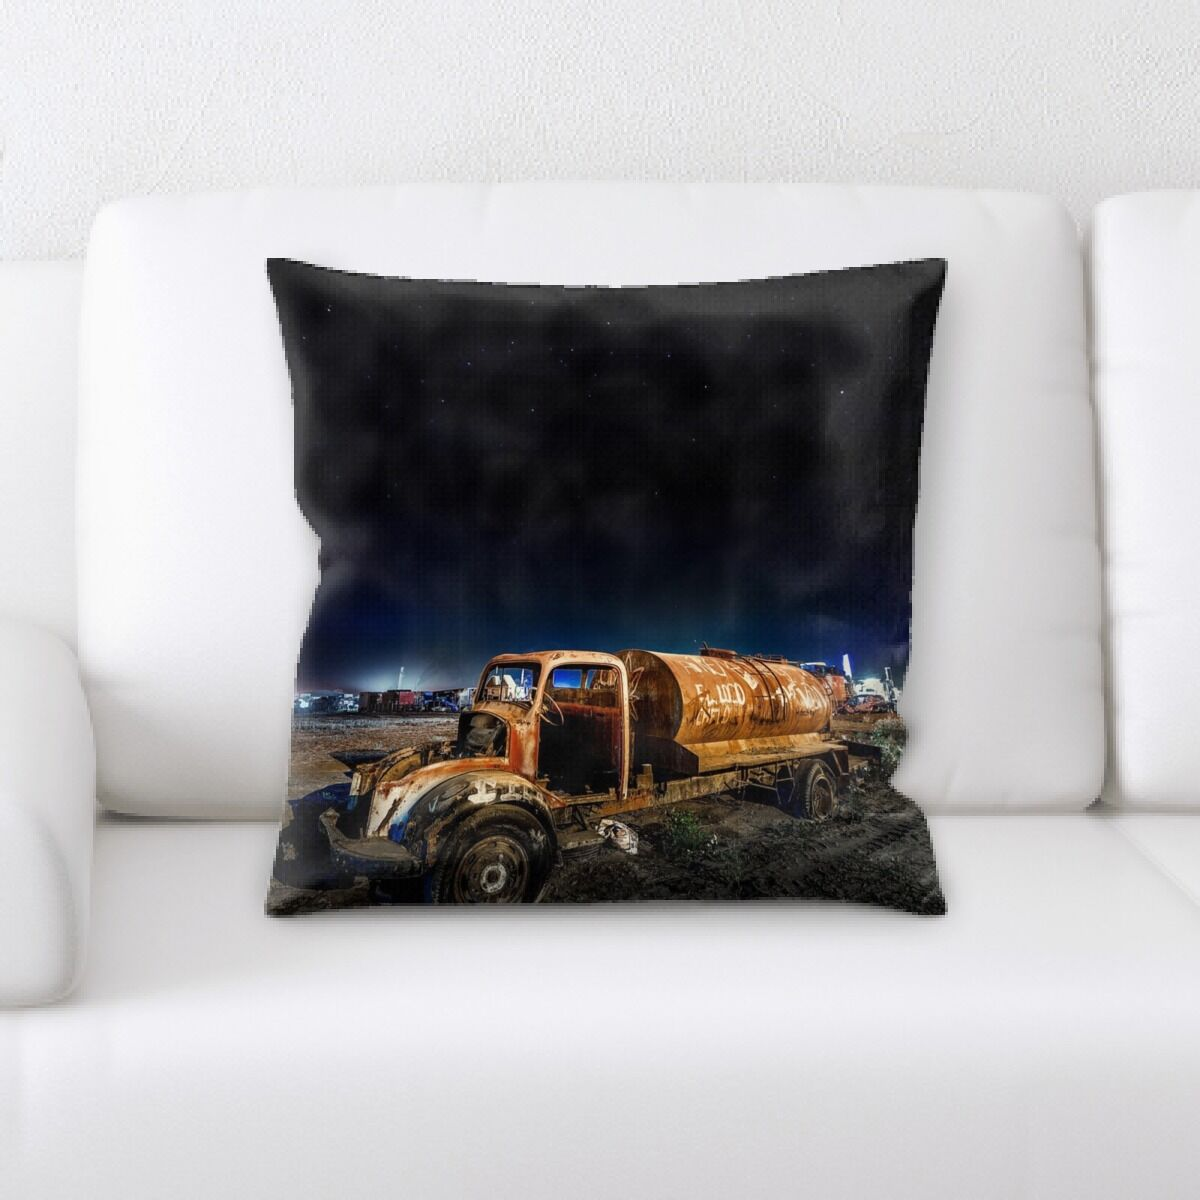 Temple Old and Abandoned (202) Throw Pillow